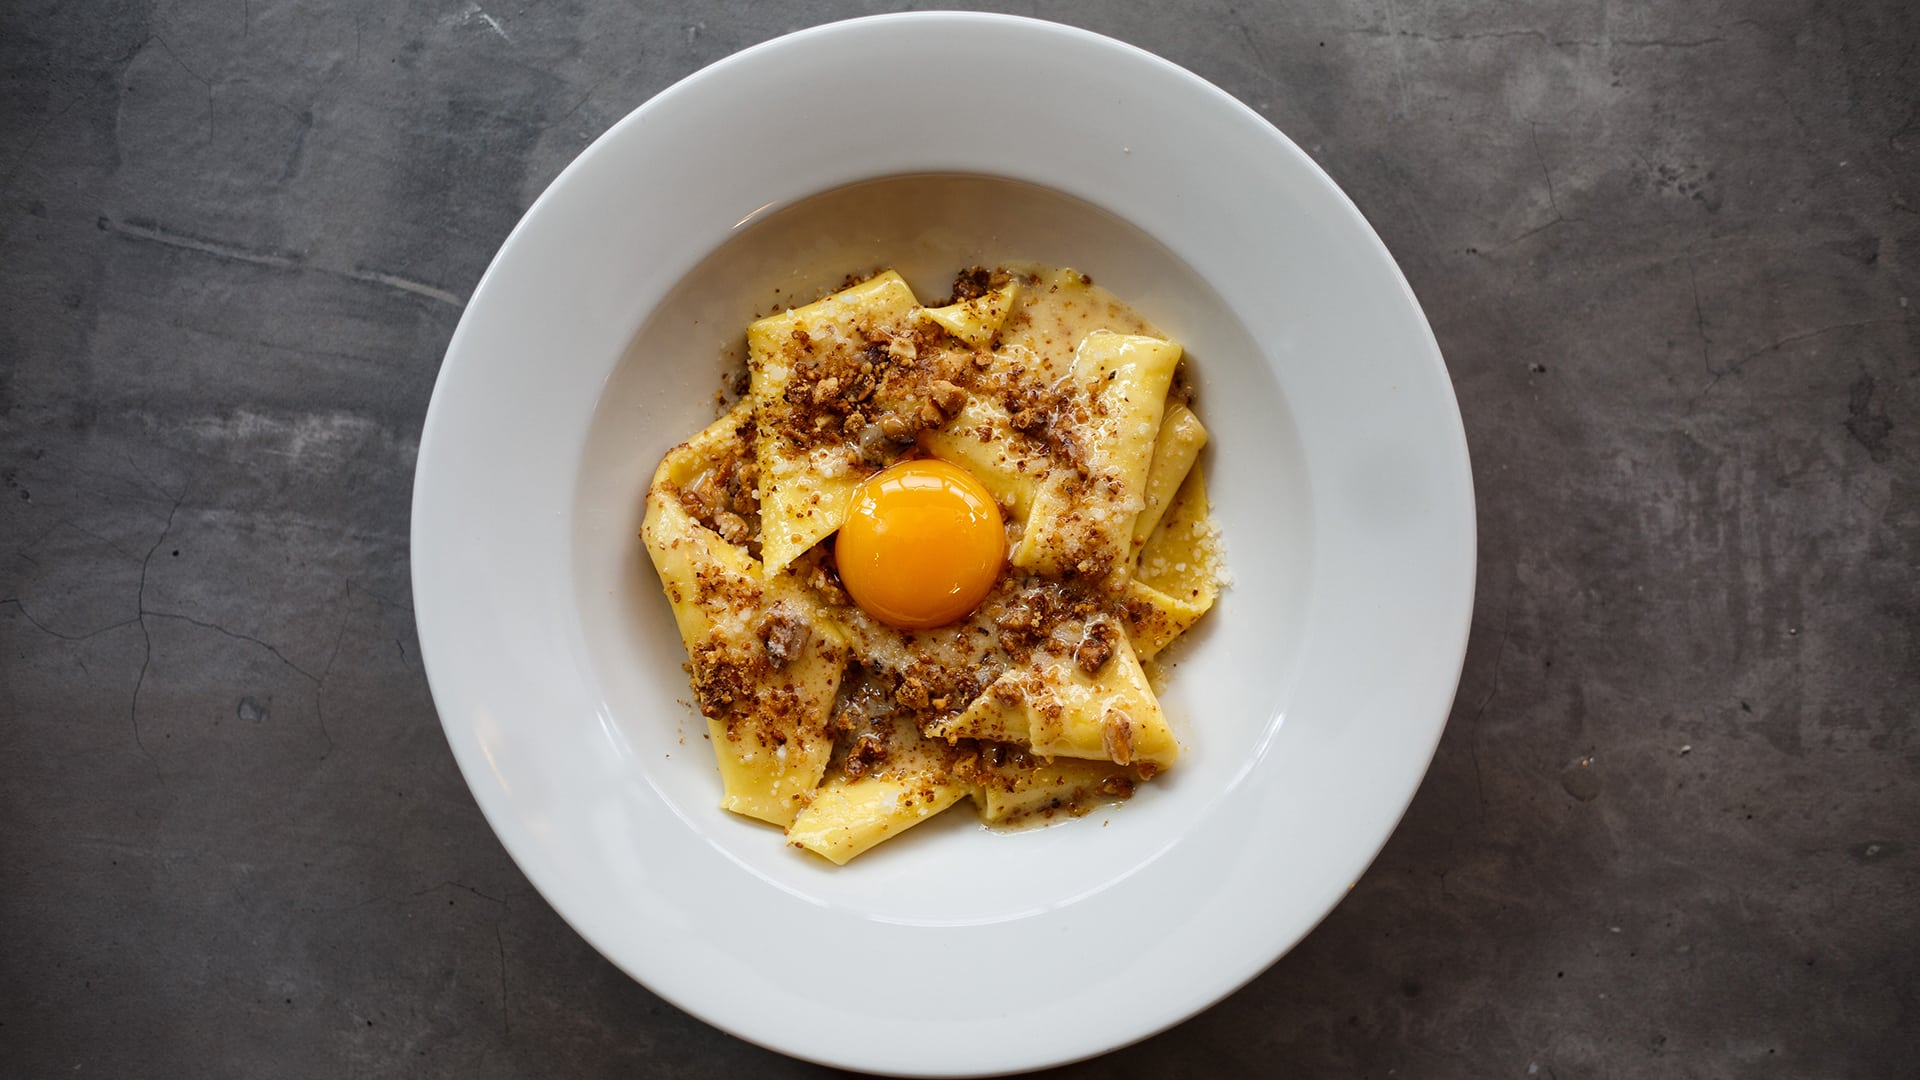 Pappardelle with egg yolk and nuts at Bancone in Covent Garden, one of the best pasta restaurants in London